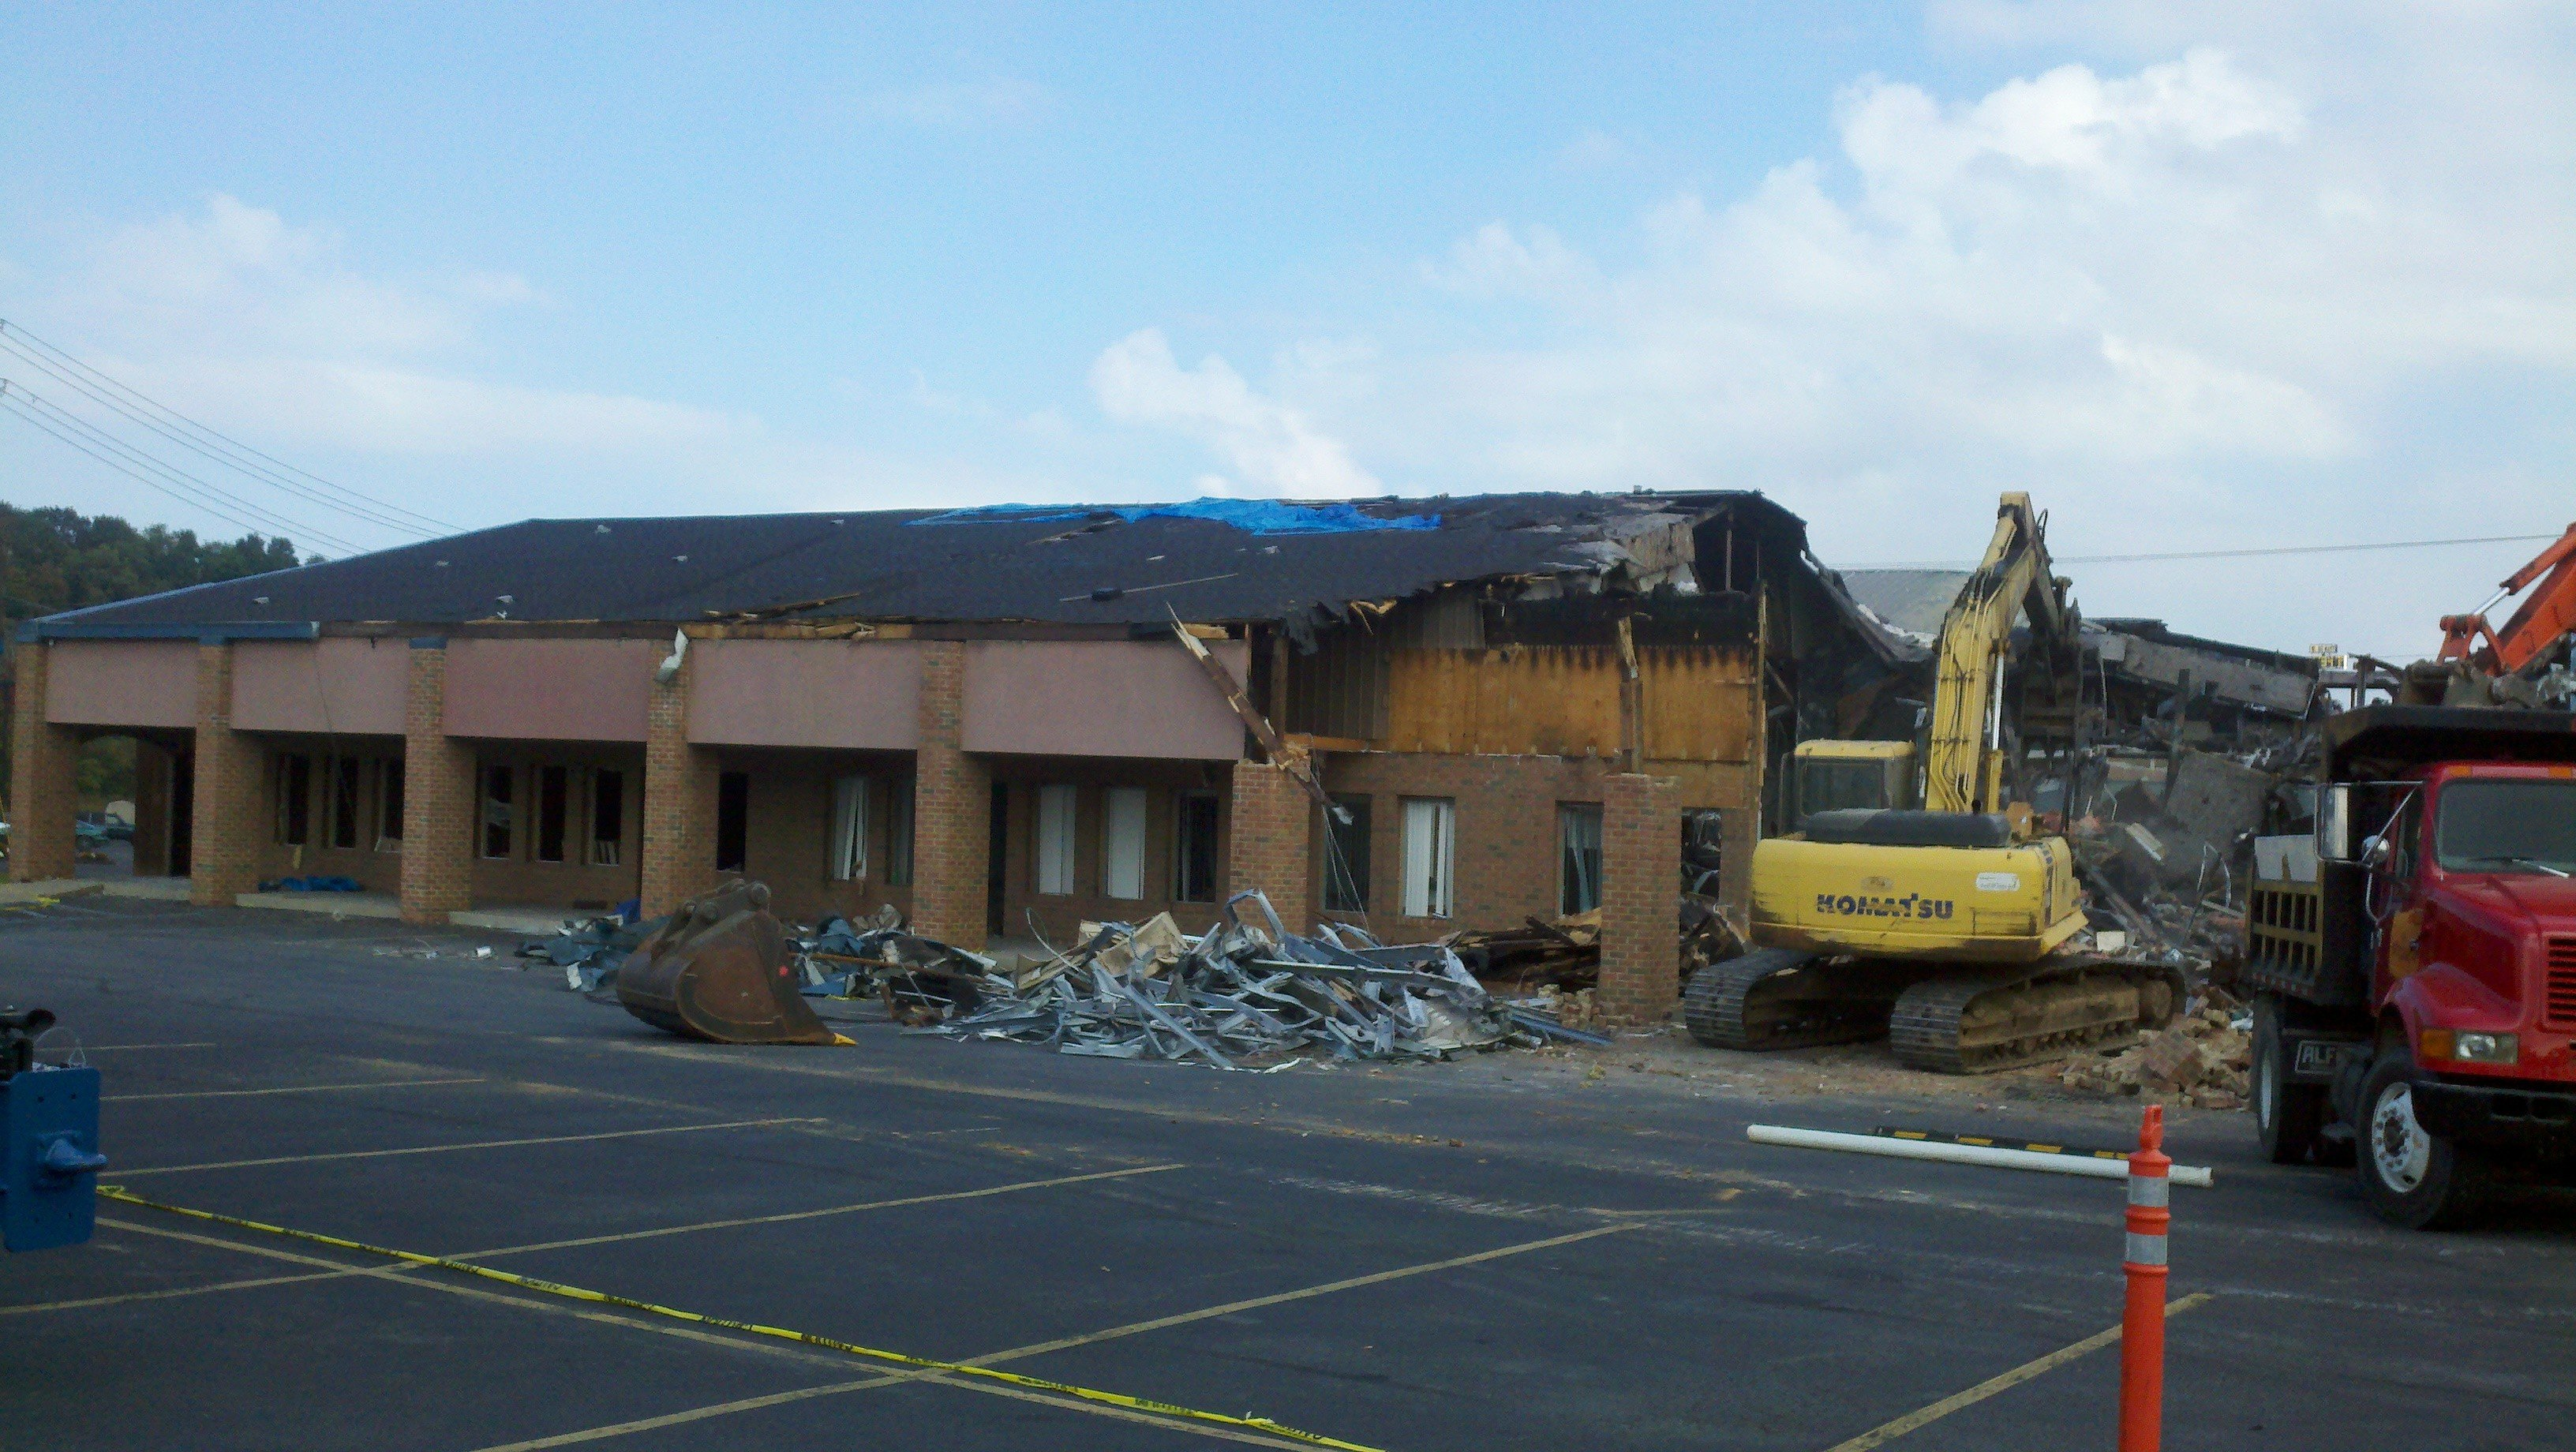 Workers began demolishing the Johnson Center in Bridgeport Wednesday after a fire destroyed the center in April.